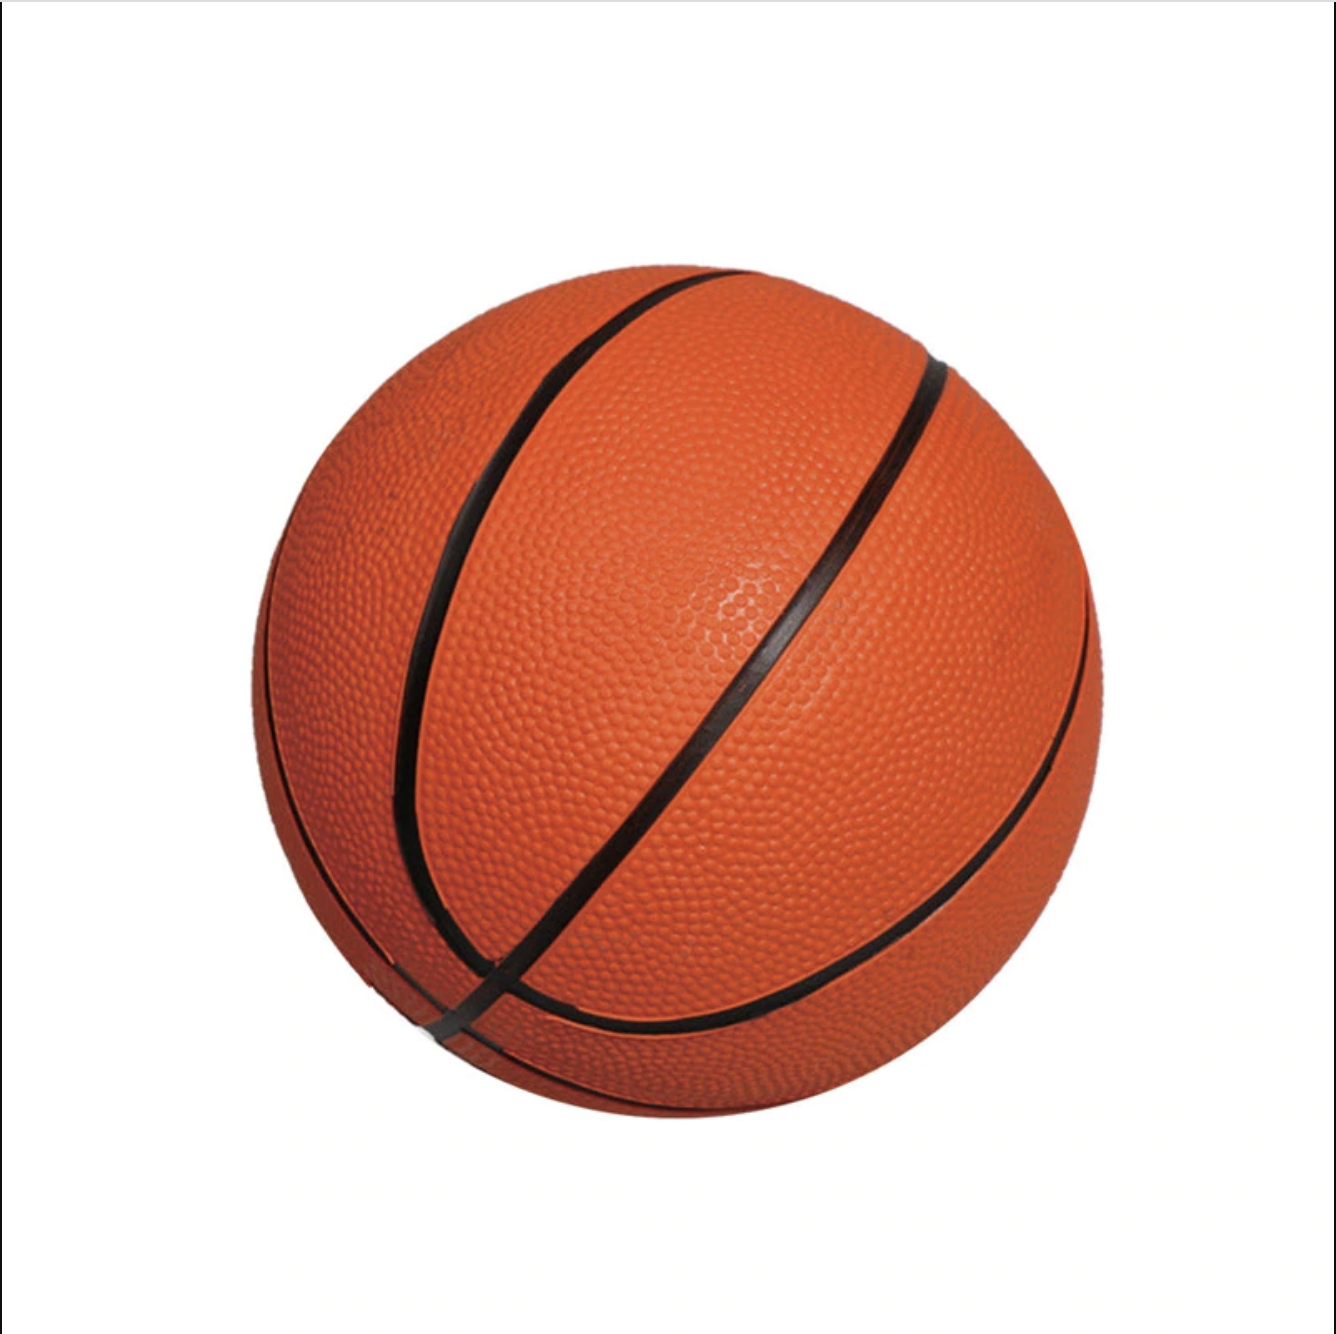 Sports & Outdoors Toys